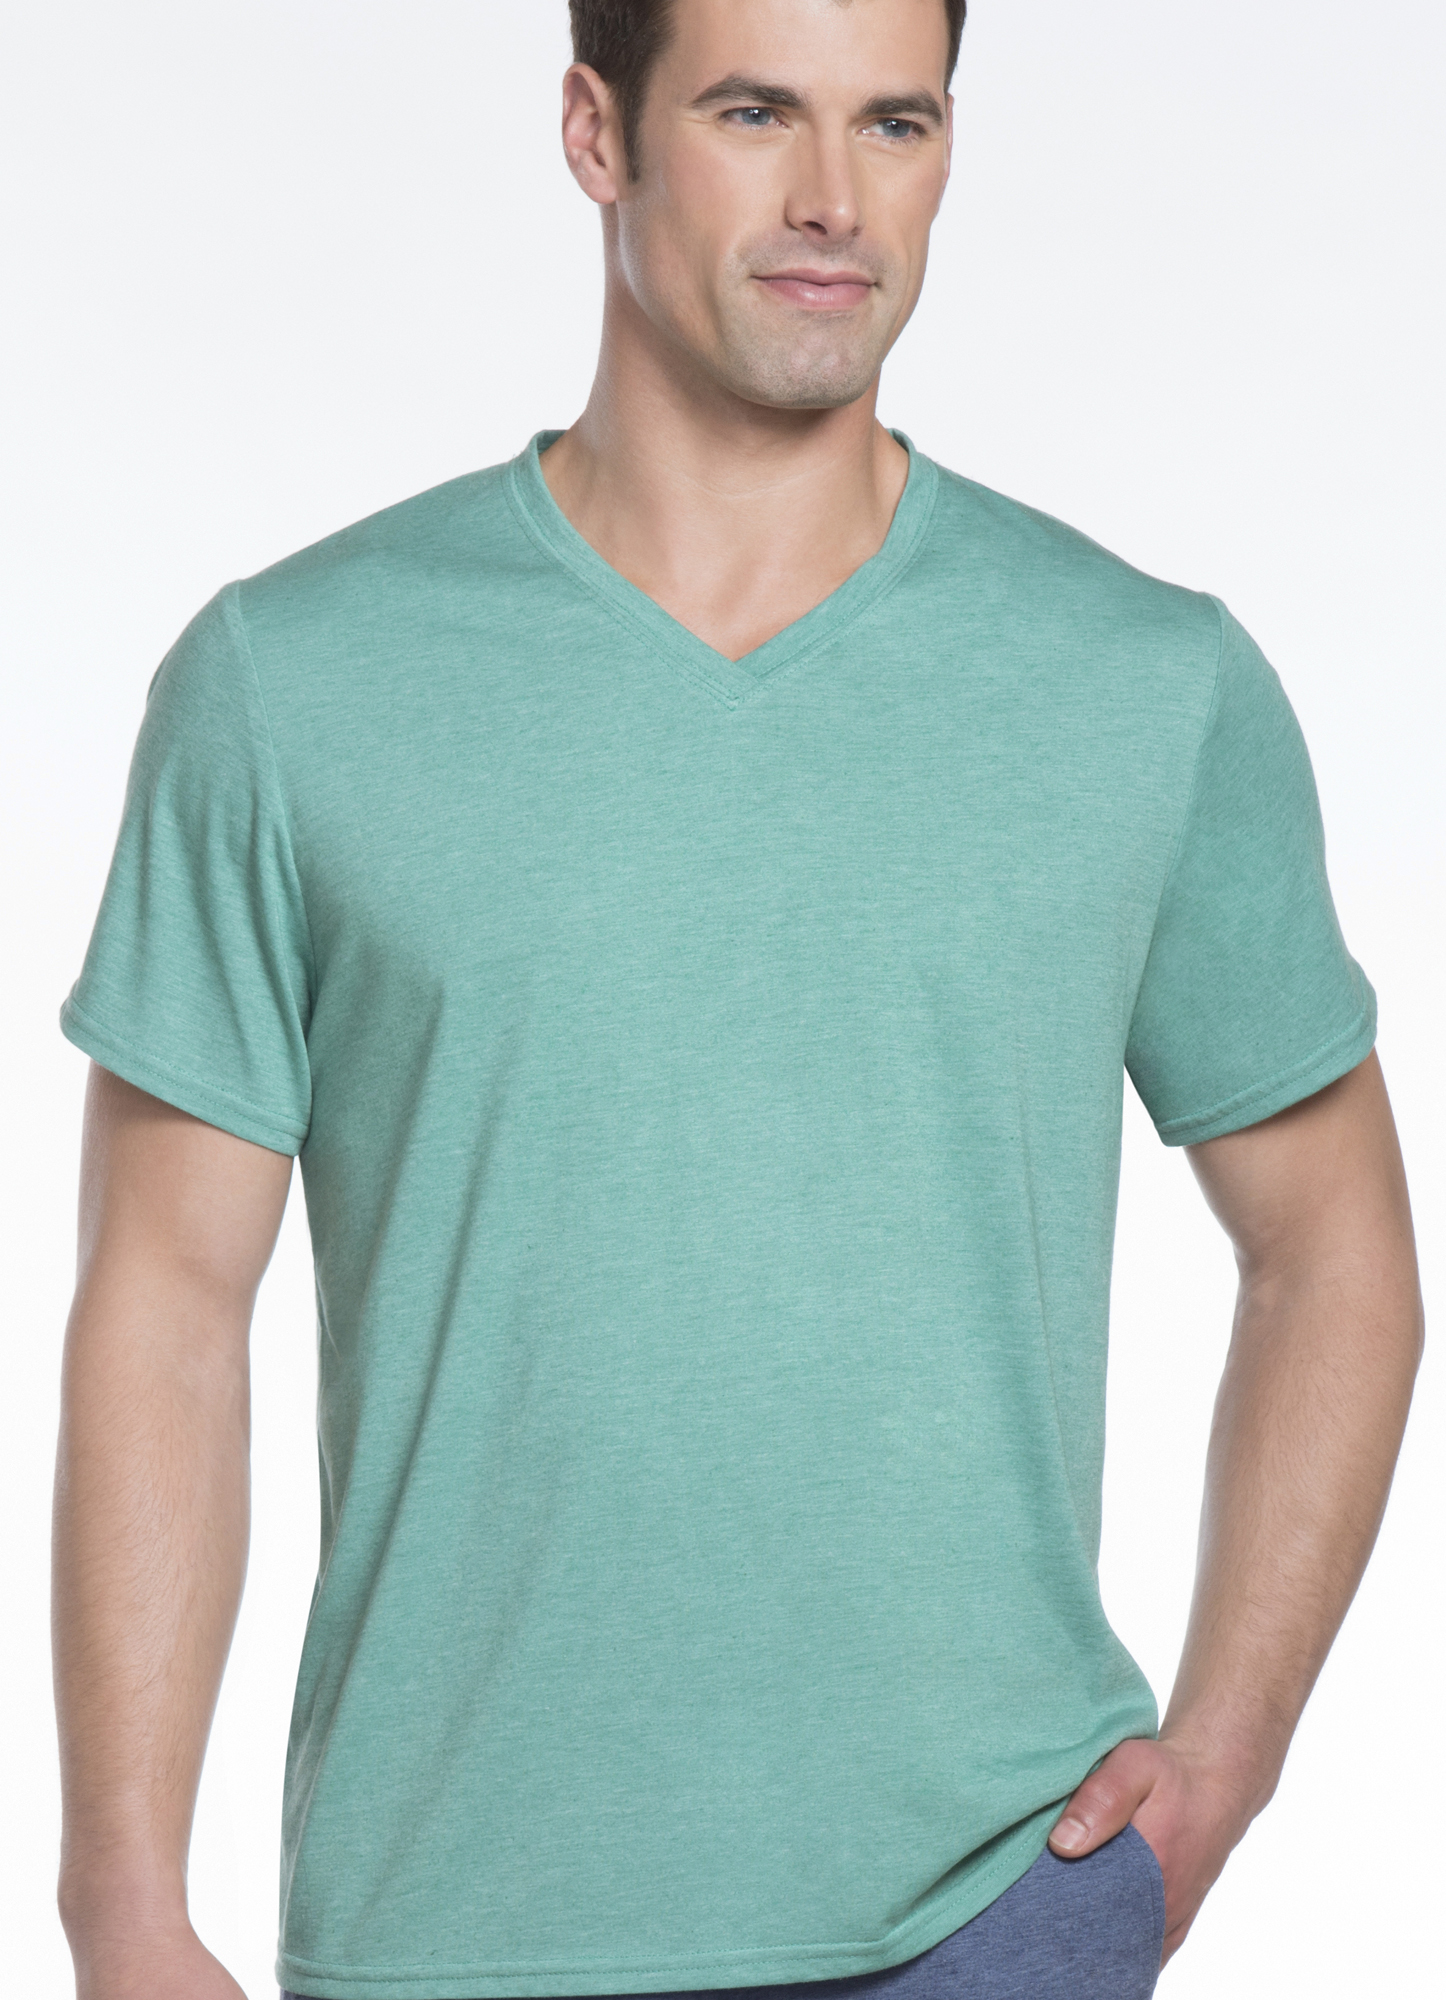 jockey v neck sleep t shirt